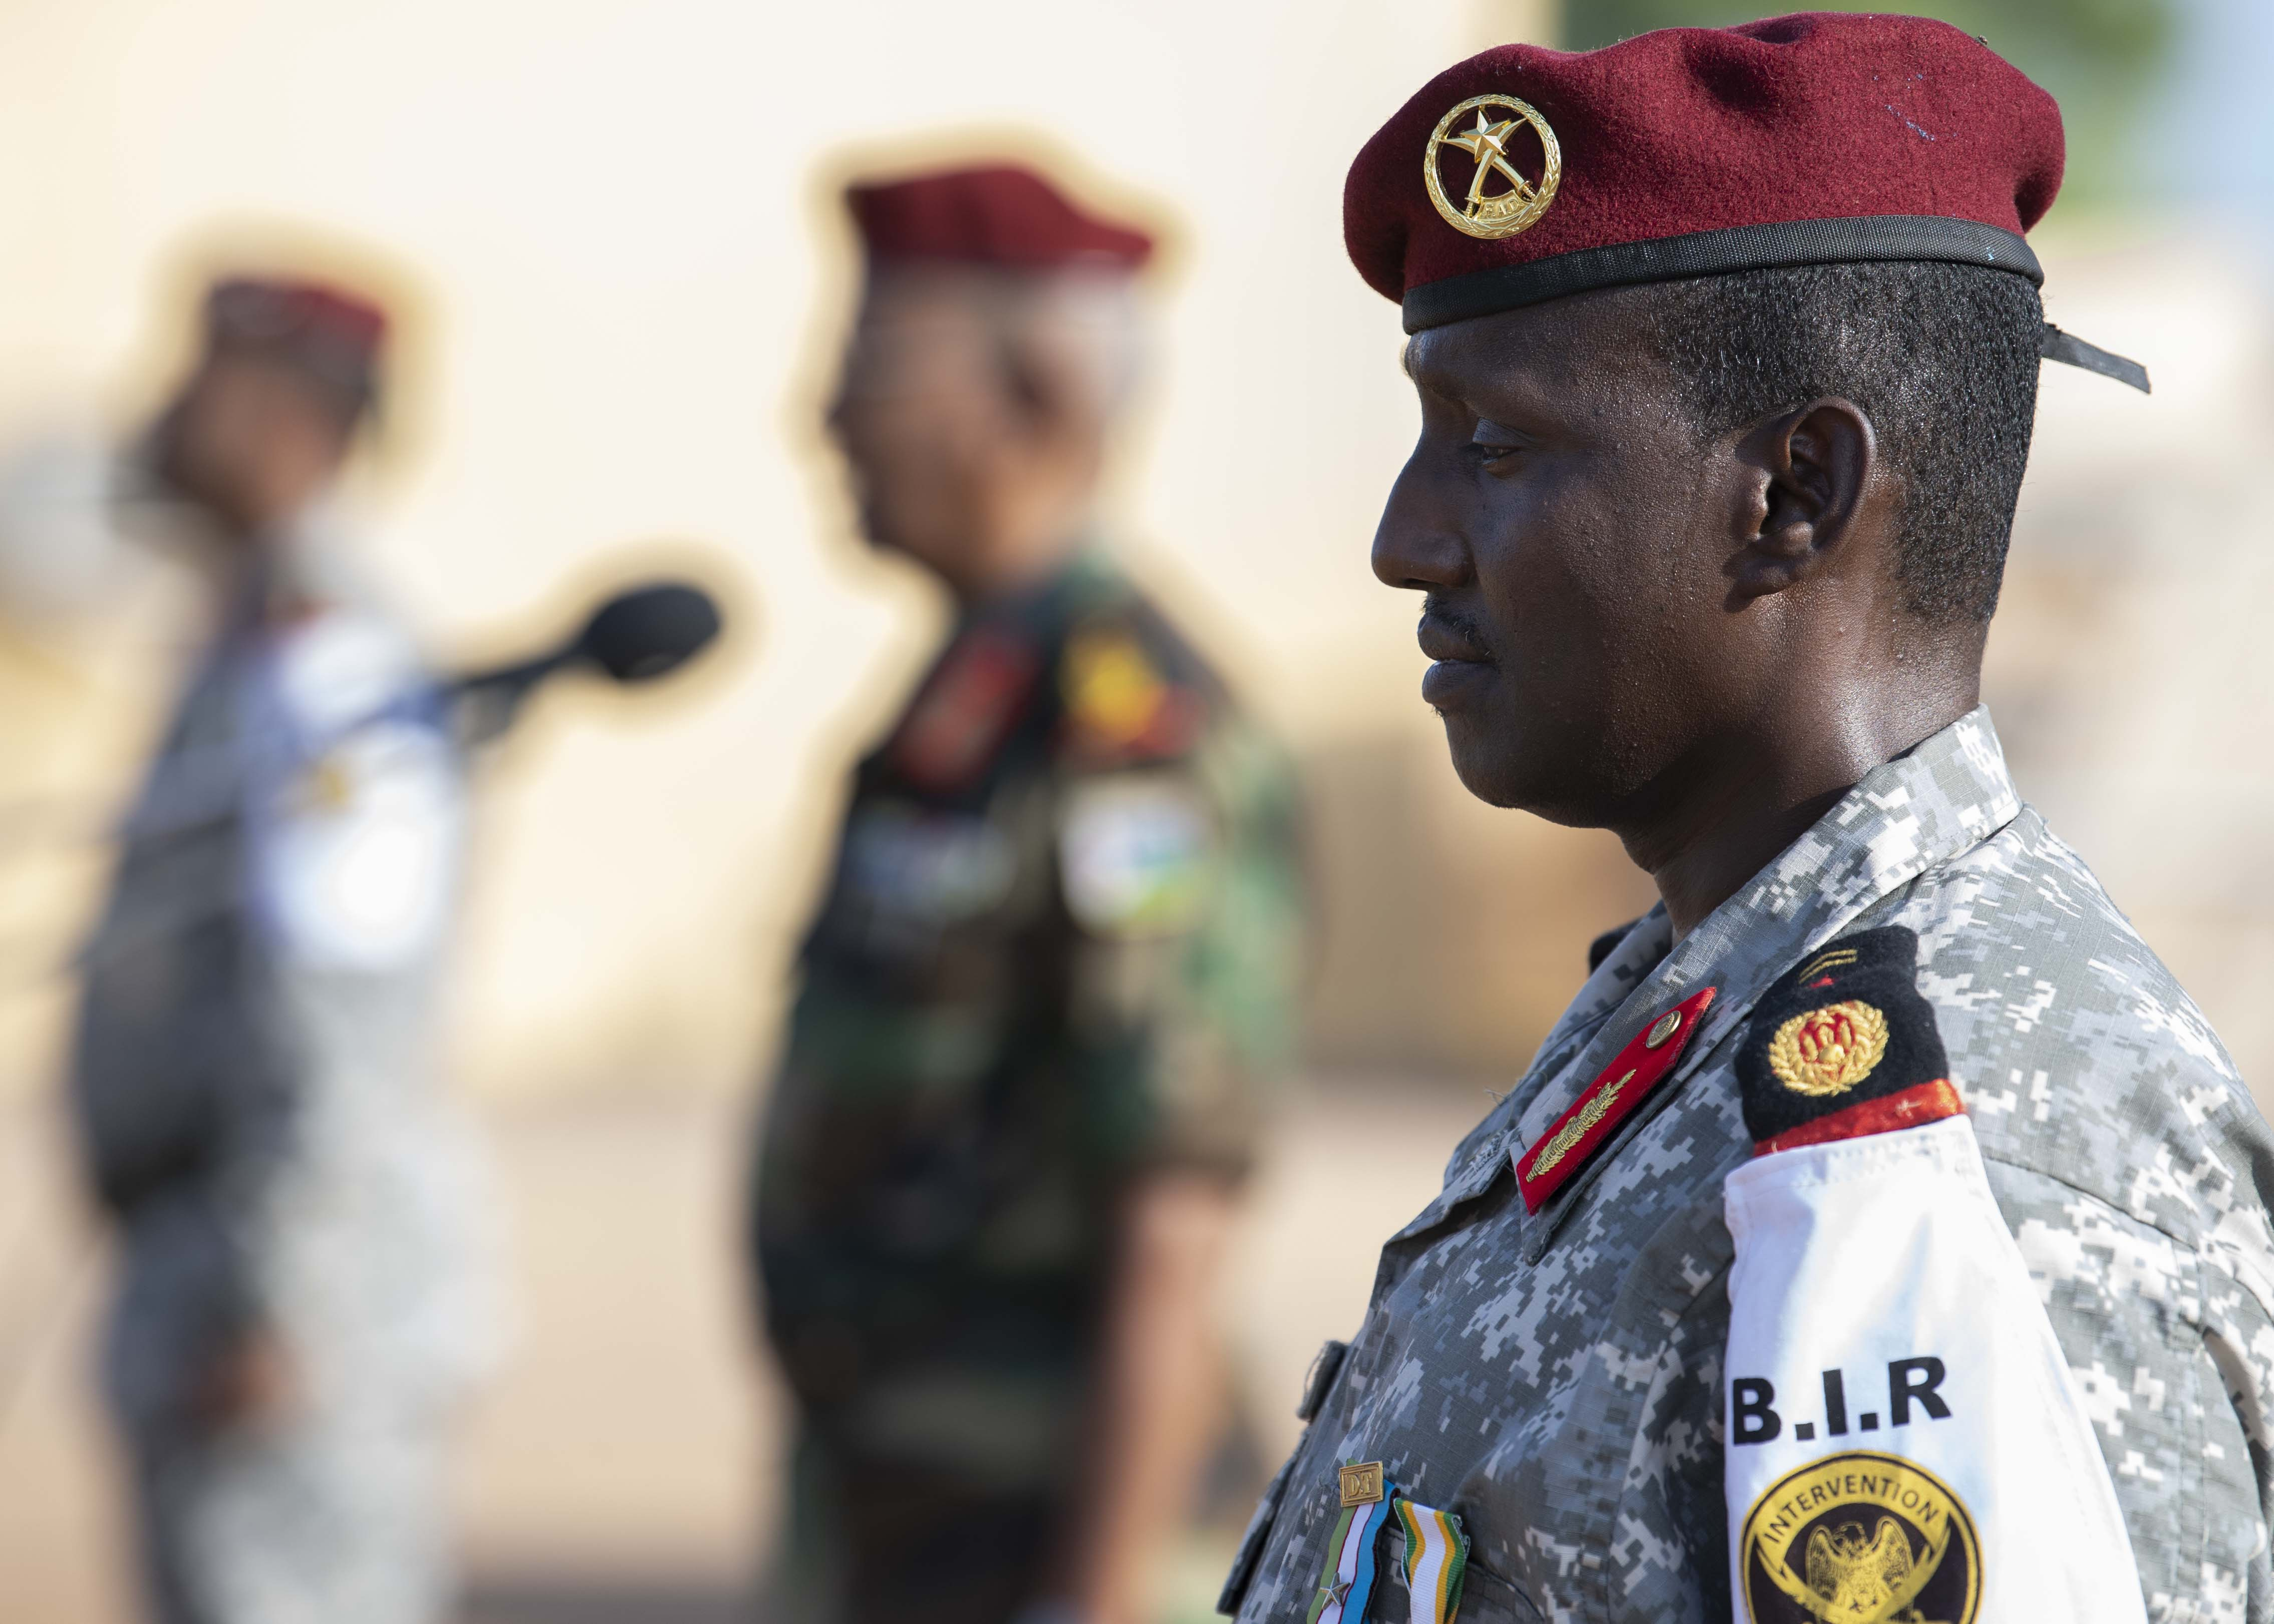 Djiboutian Maj. Mohamed Assowen, commander of the Rapid Intervention Battalion, stands at attention during the Rapid Intervention Battalion (RIB) change of command, in Djibouti, Oct. 31, 2019. Assowen assumed command of the RIB from Djiboutian Capt. Omar Ali Hassan. (U.S. Air Force photo by Staff Sgt. J.D. Strong II)